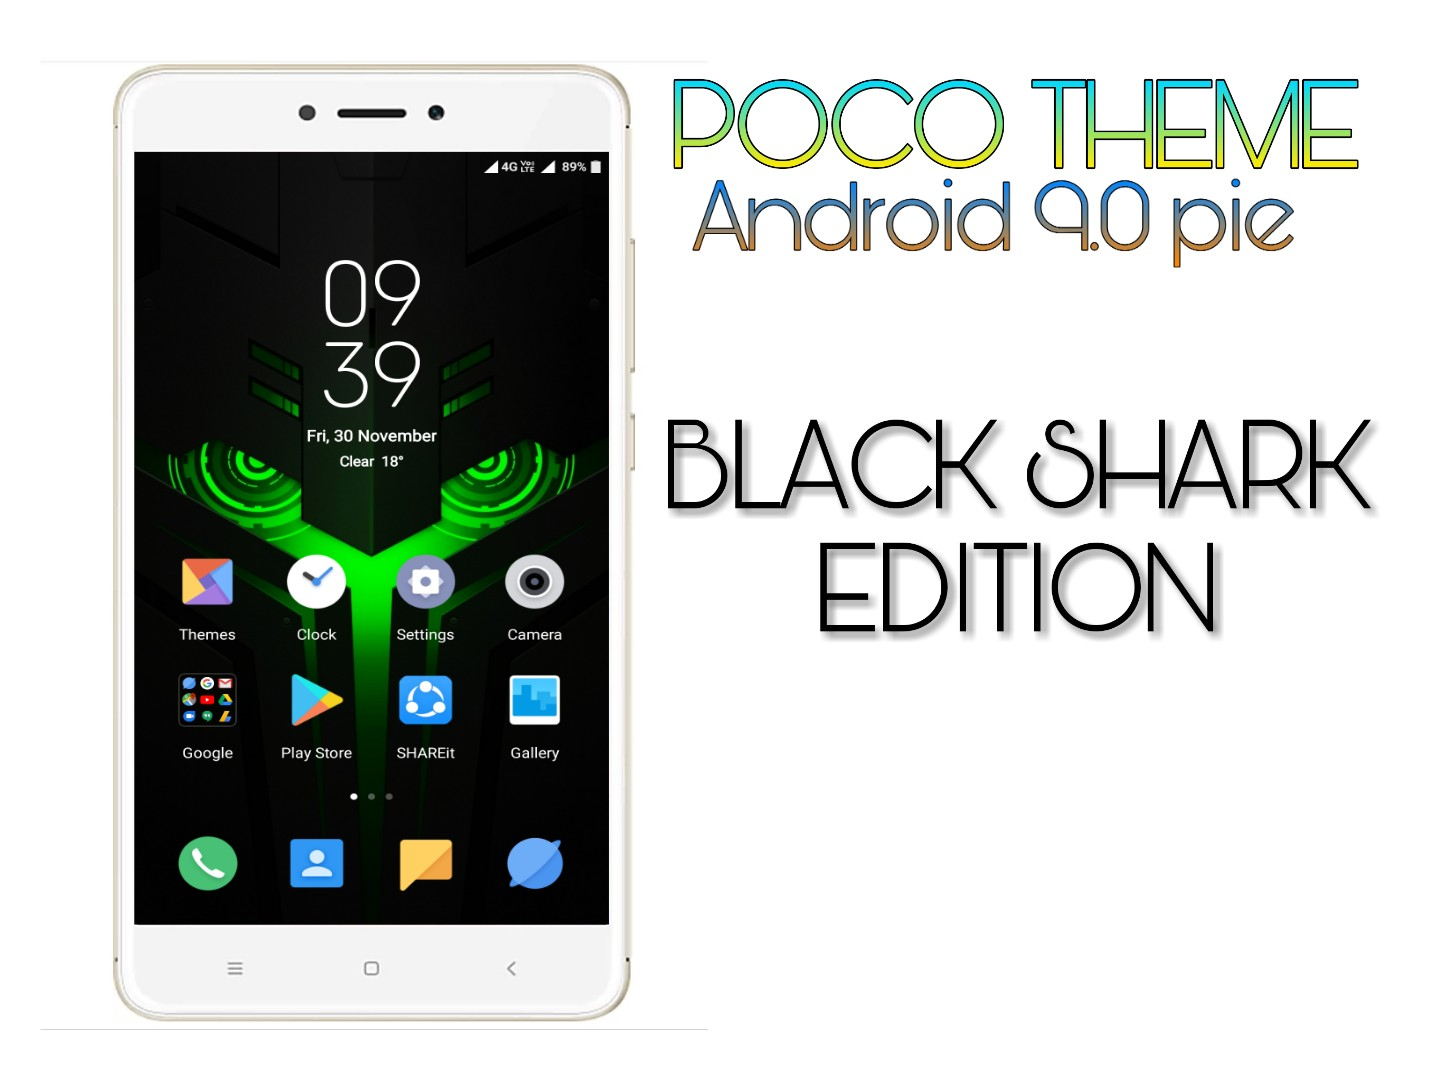 Poco theme android pie black shark edition only for miui 10